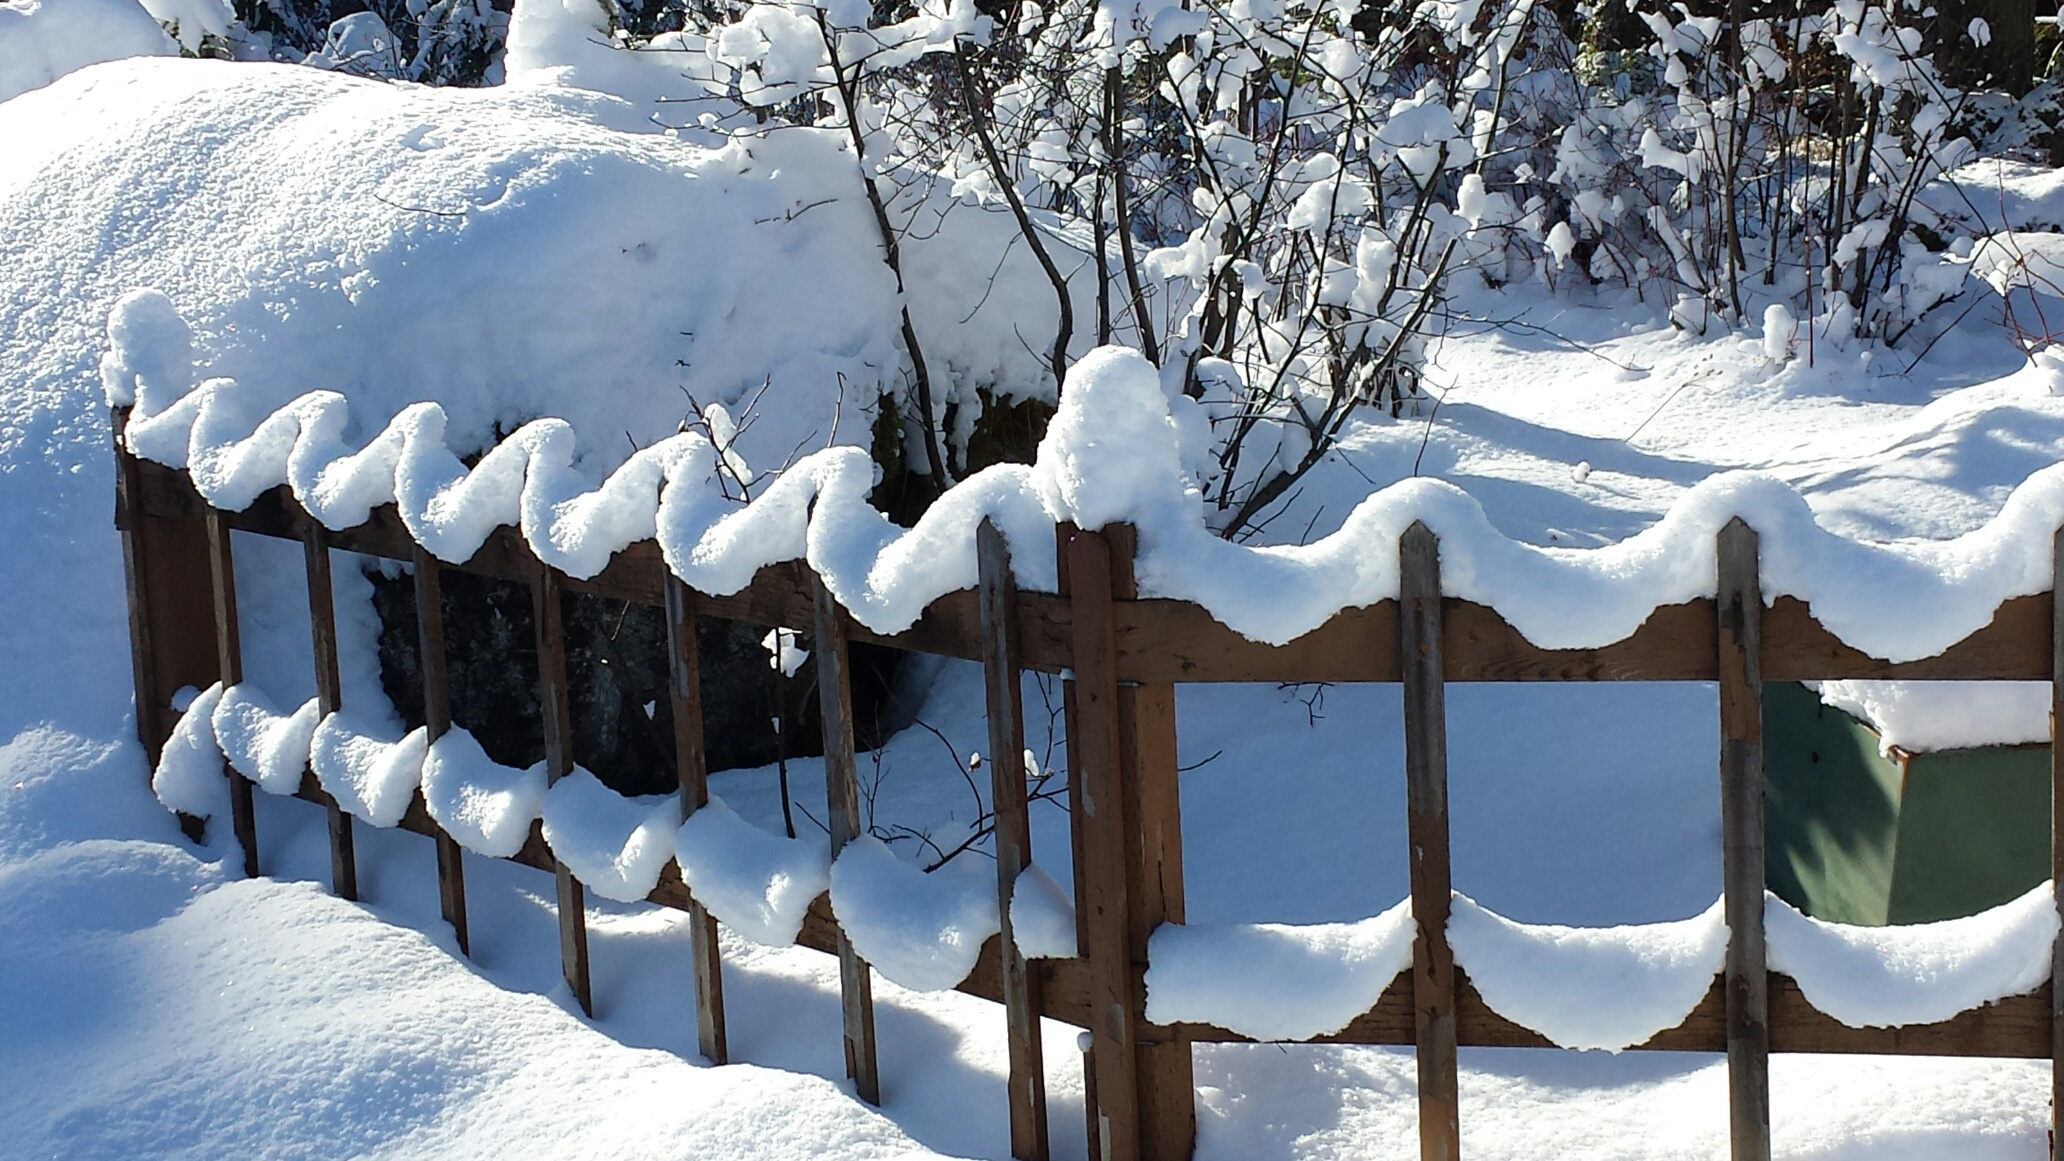 Photo of snow decorating a picket fence in Juneau, Alaska.